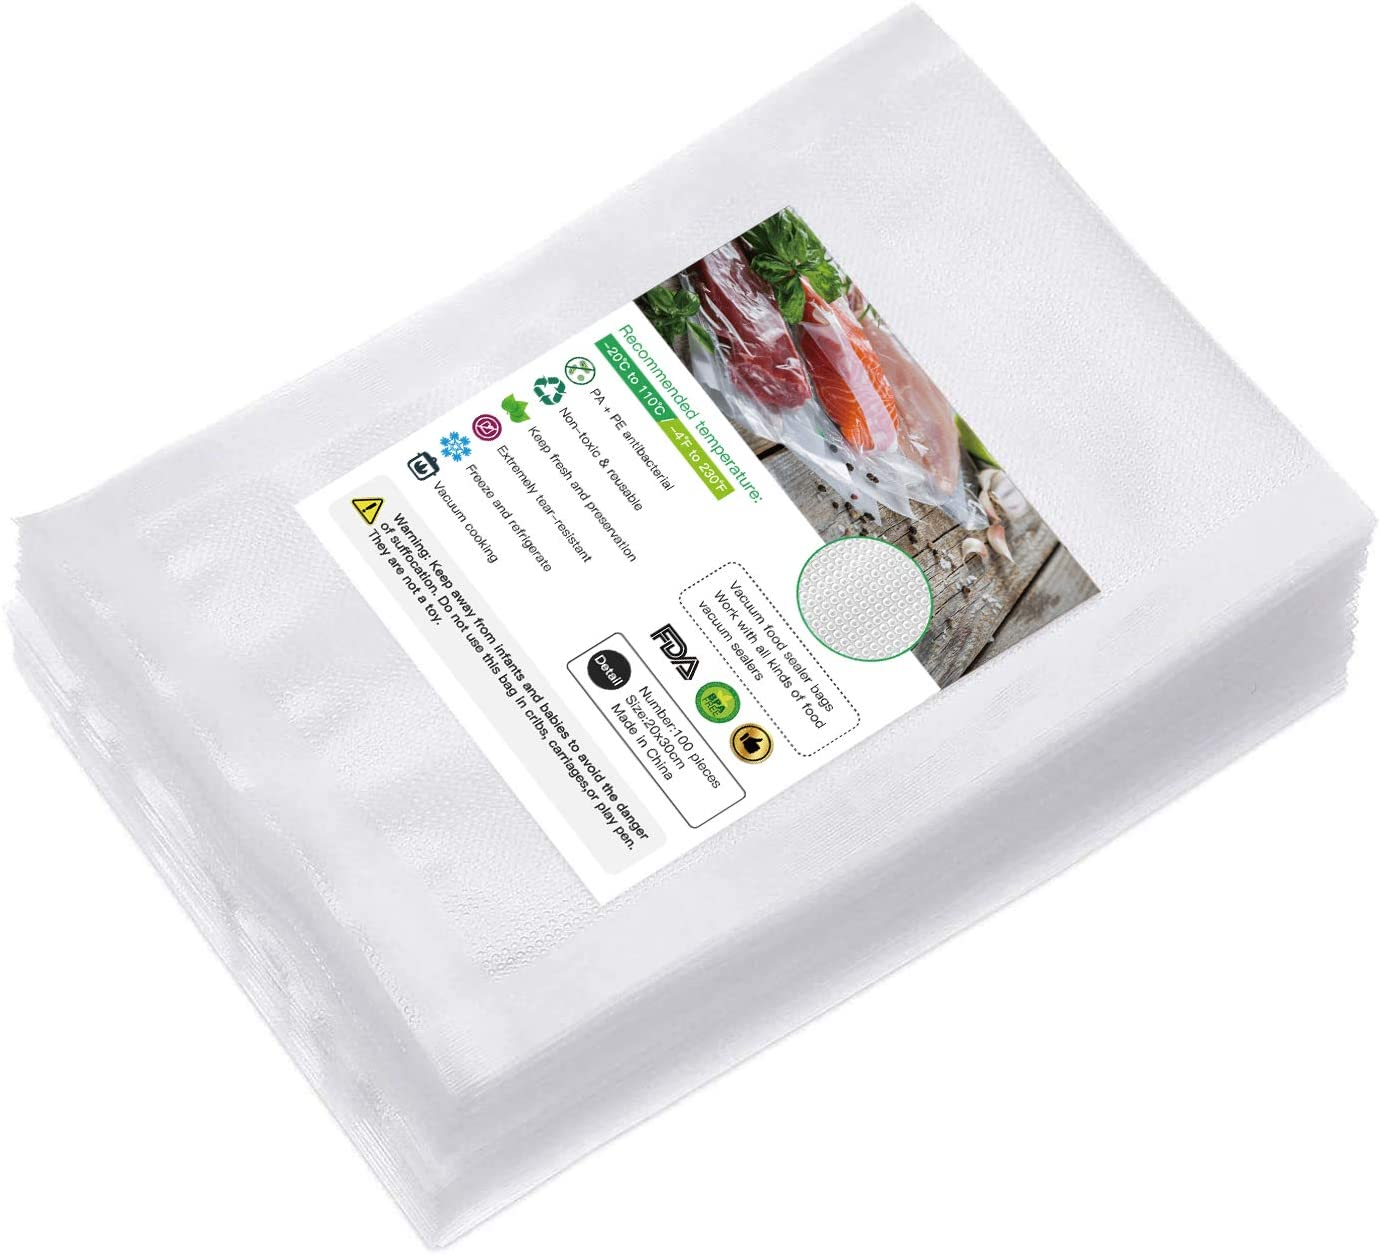 Vacuum Sealer Bags, 100 Pint 8x12 Inch Food Saver Bags, Seal a Meal Type Vac Sealers, Commercial Grade, BPA Free, Heavy Duty, Perfect for Vacuum Storage, Meal Preparation or Sous Vide